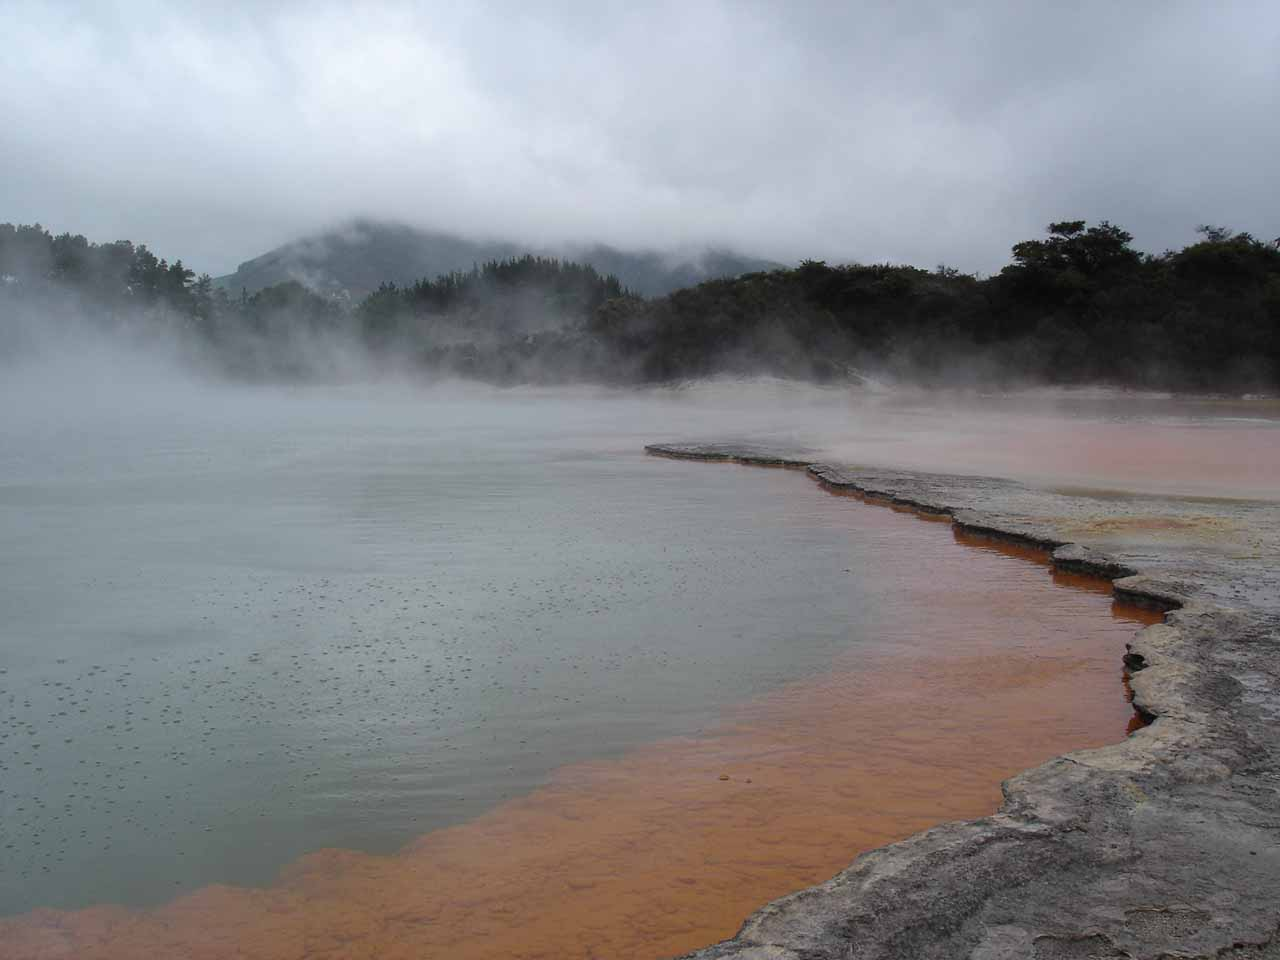 A little further south of Rotorua was the Wai-o-tapu (forbidden waters) Thermal Park, which featured the Champagne Pool shown here as well as the Lady Knox Geyser, which has a controlled eruption